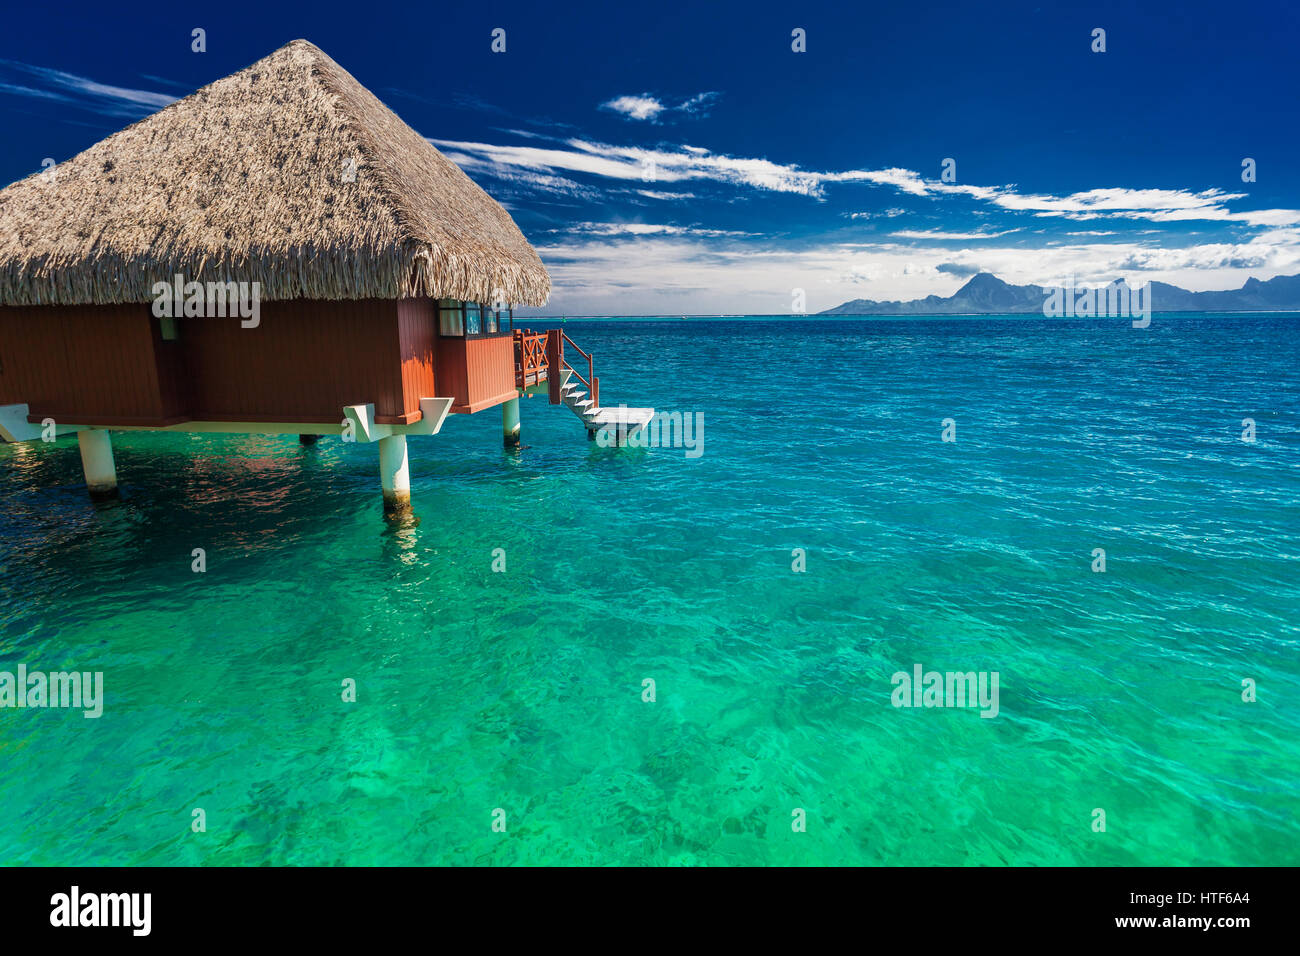 Overwater bungalows with best beach for snorkeling, Tahiti, French Polynesia - Stock Image